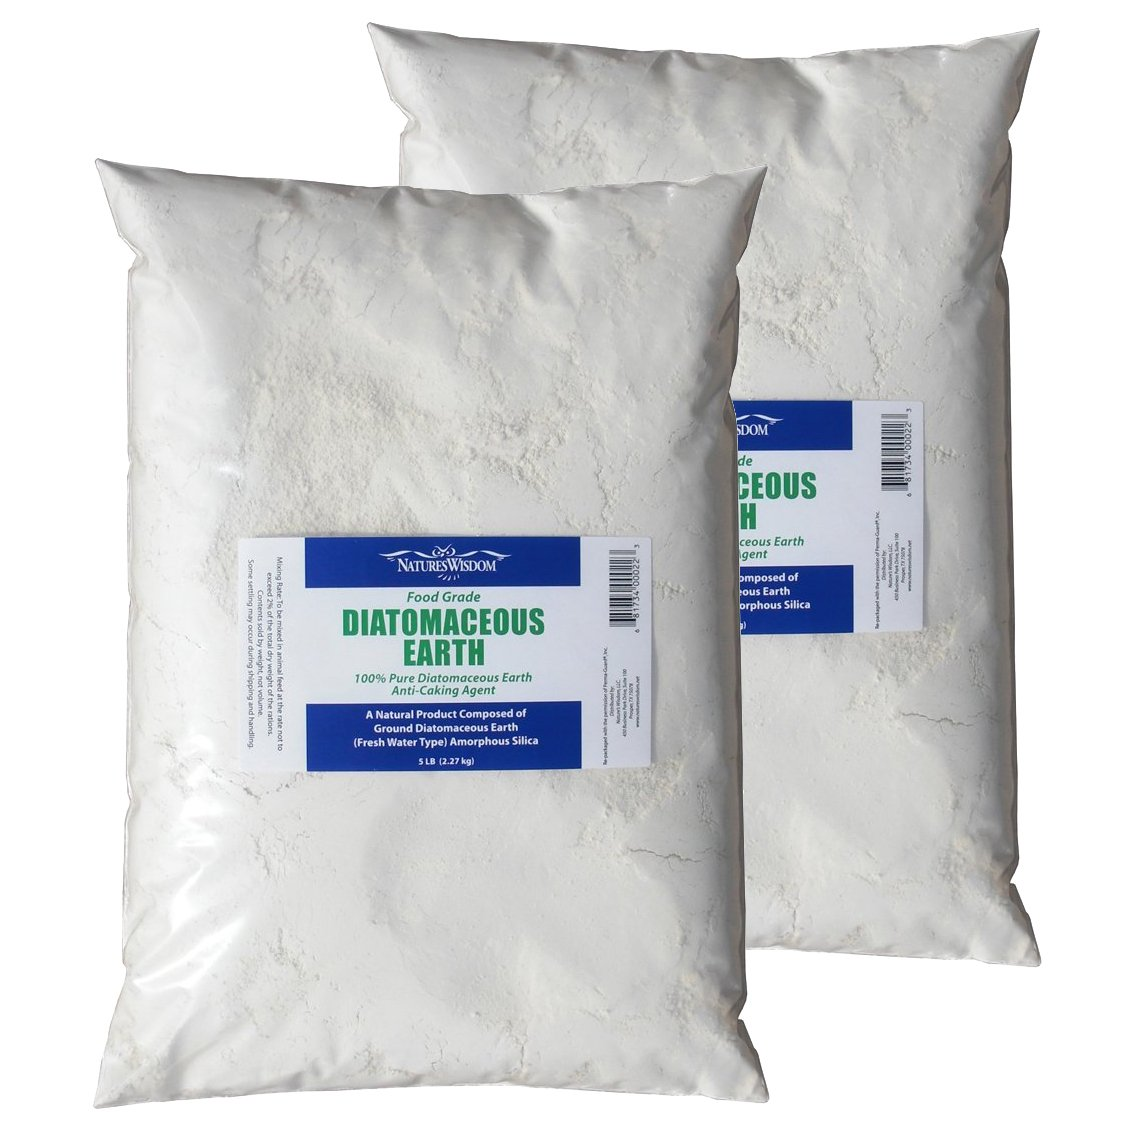 Food Grade Diatomaceous Earth 10 lb. by Natures Wisdom (Two 5 lb. bags in a box)